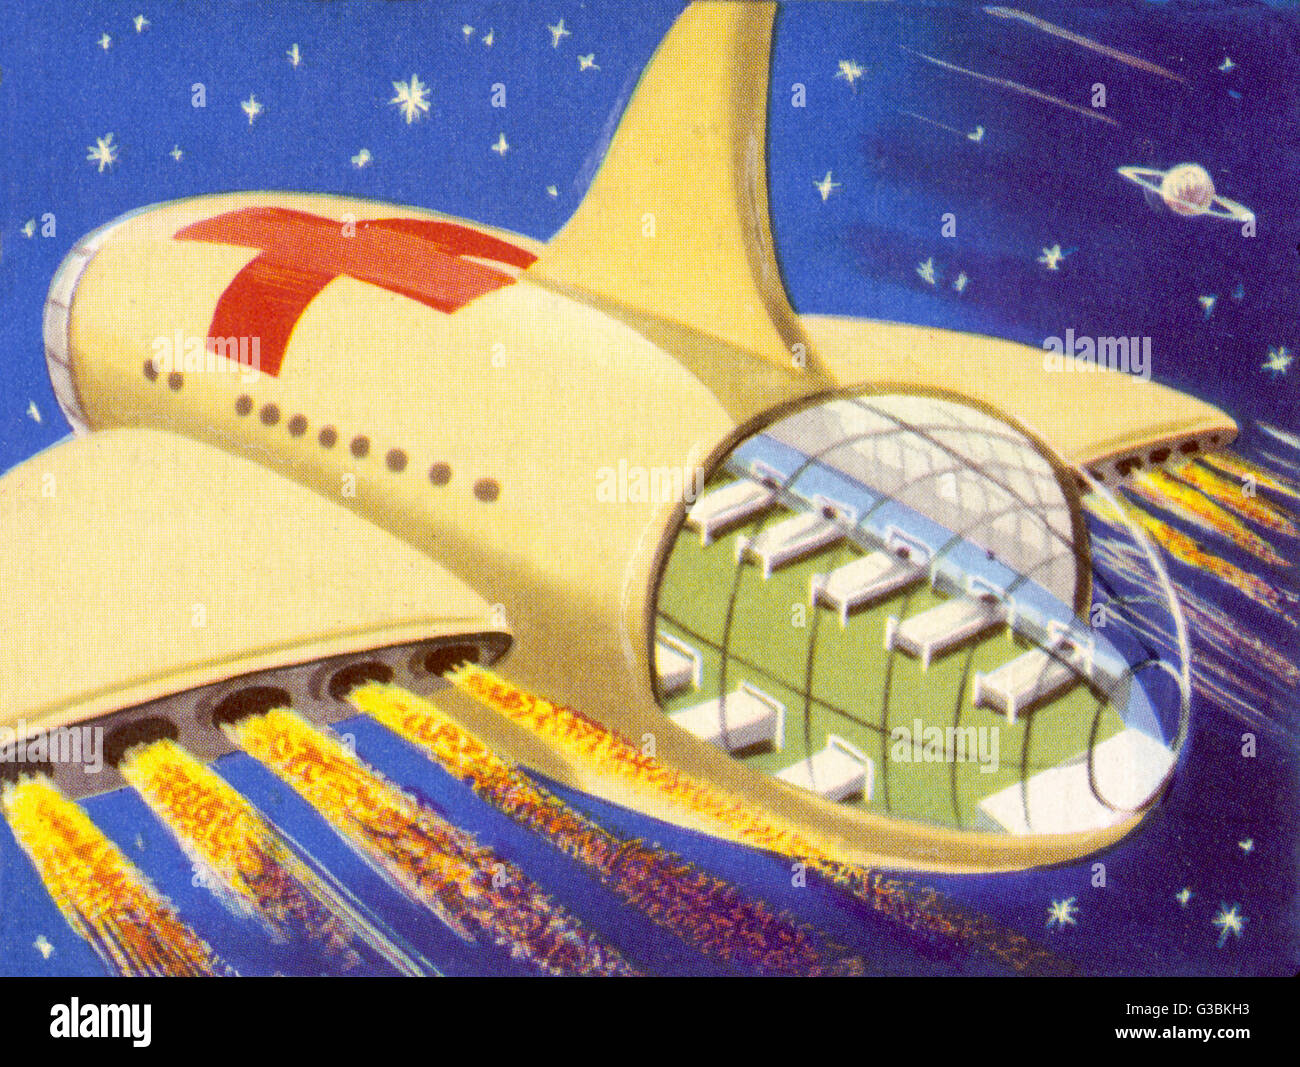 HOSPITAL SPACESHIP, EQUIPPED  TO CARRY SPACE CASUALTIES AND  GIVE THEM IN-FLIGHT TREATMENT       Date: circa 1950 - Stock Image